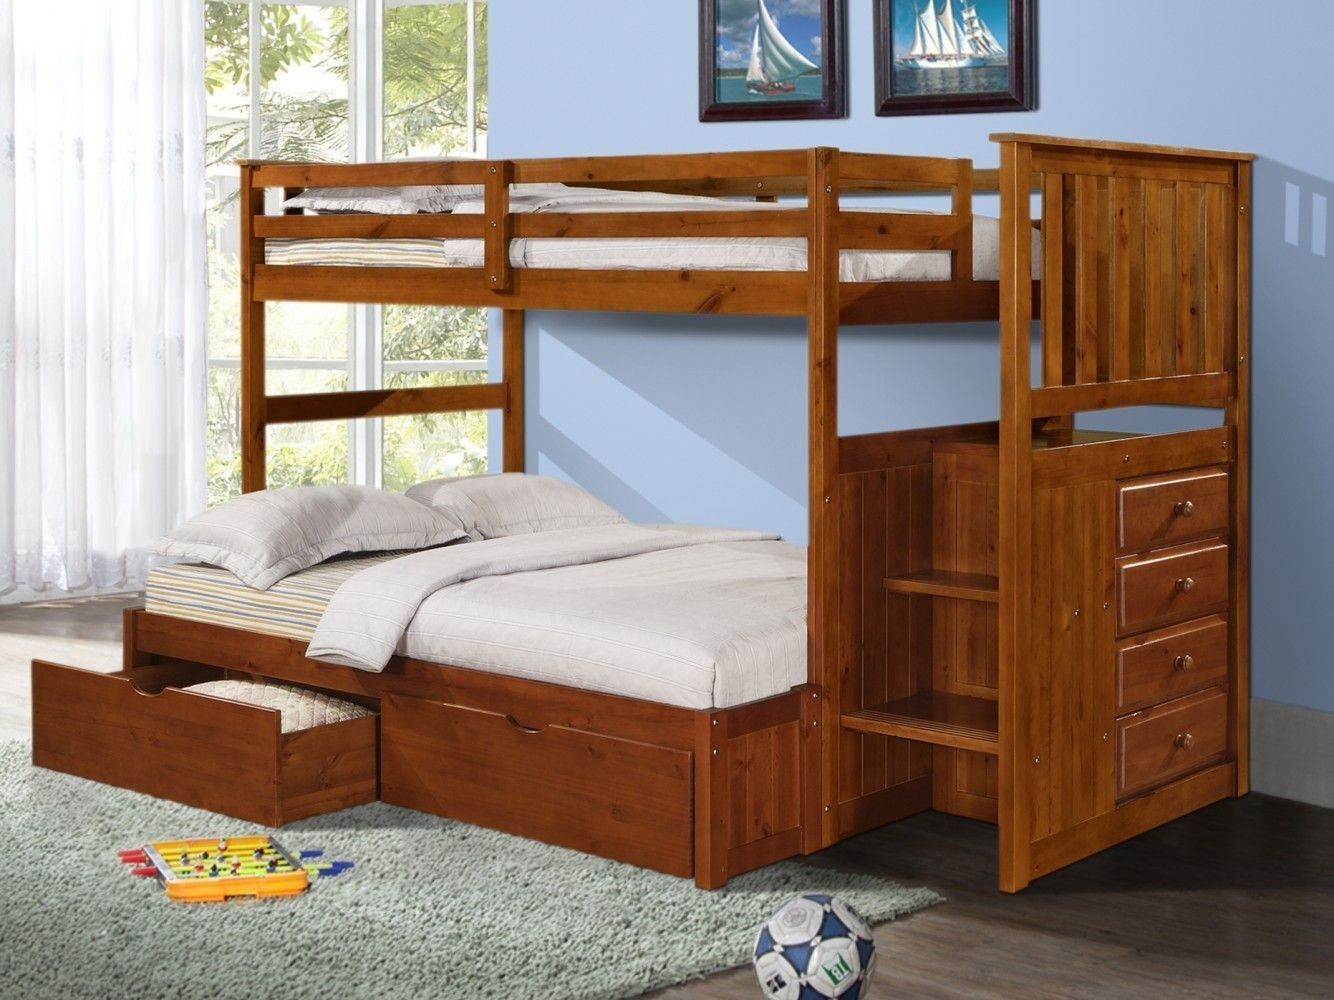 Image of: Bunk Beds Twin Over Full With Storage Simple